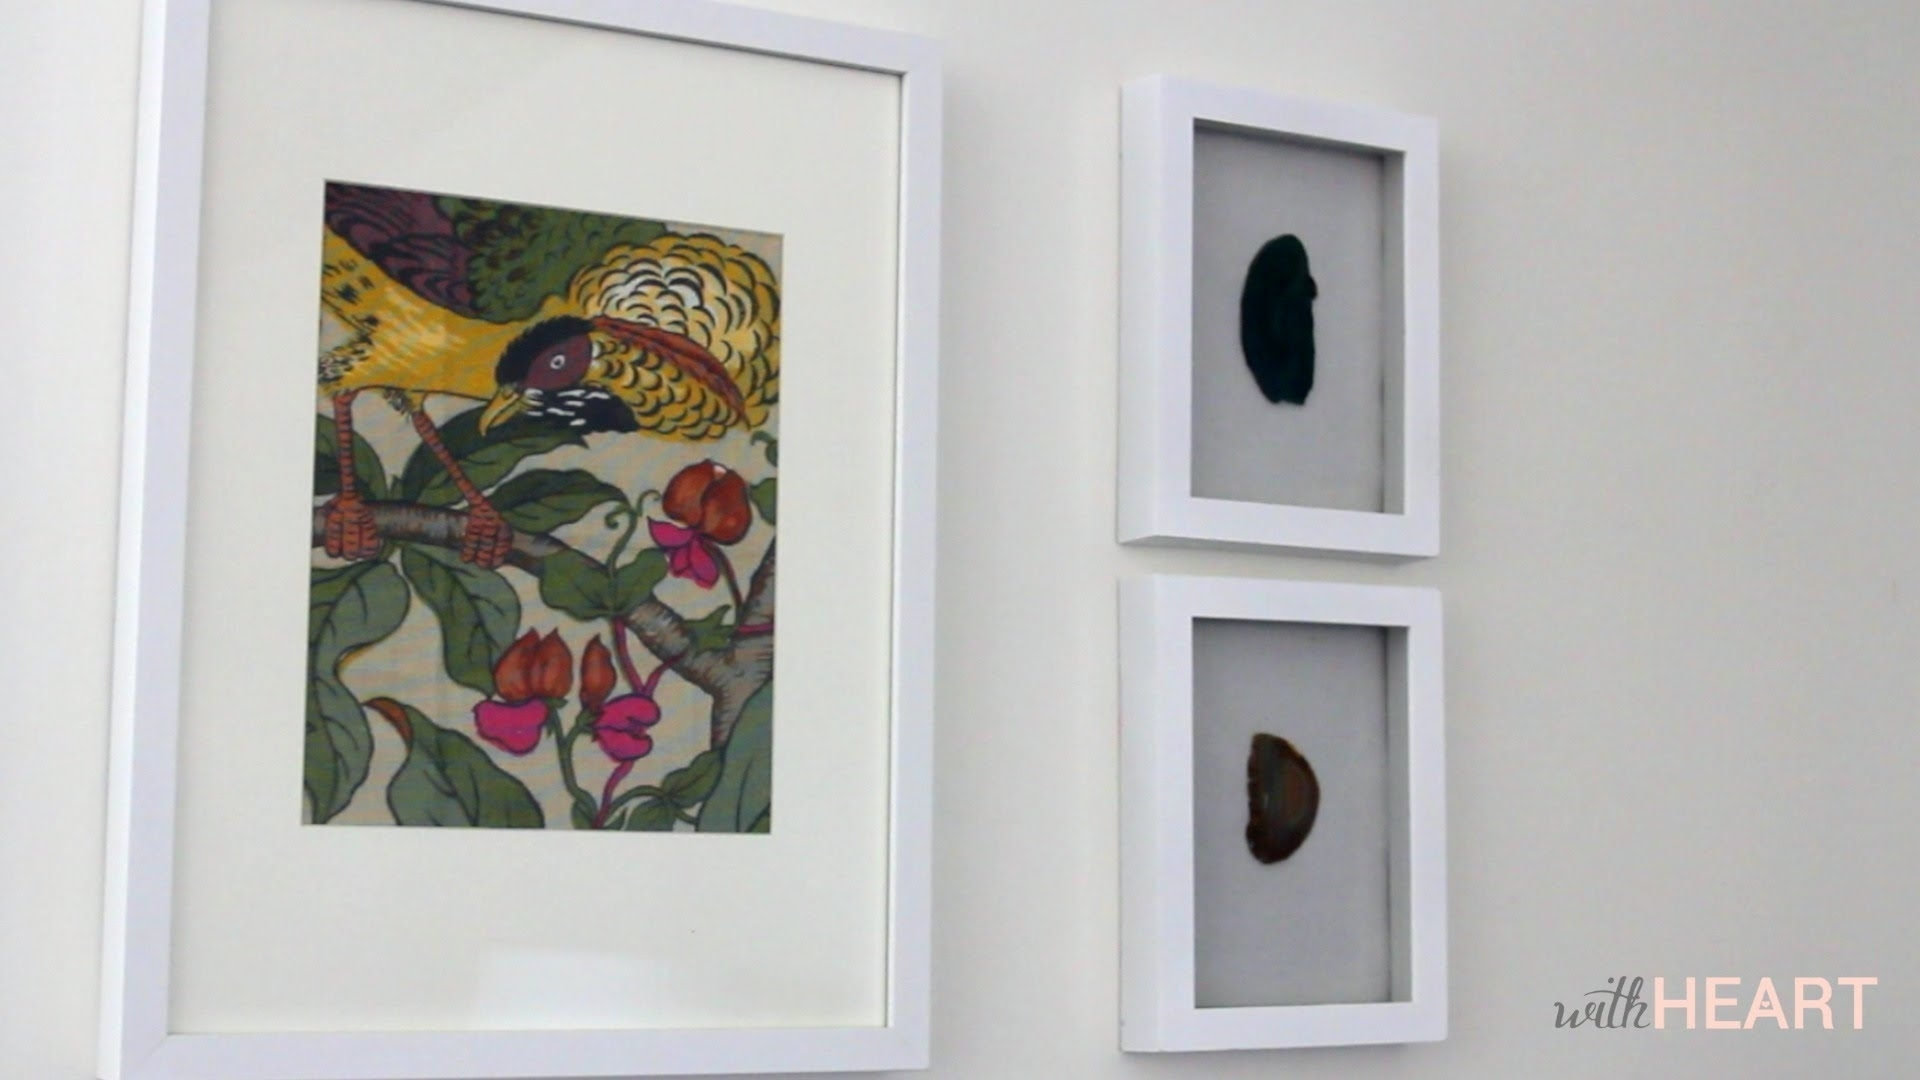 Easy Art: Framed Fabric   Withheart – Youtube In Most Recent Fabric Wall Art Frames (View 13 of 15)